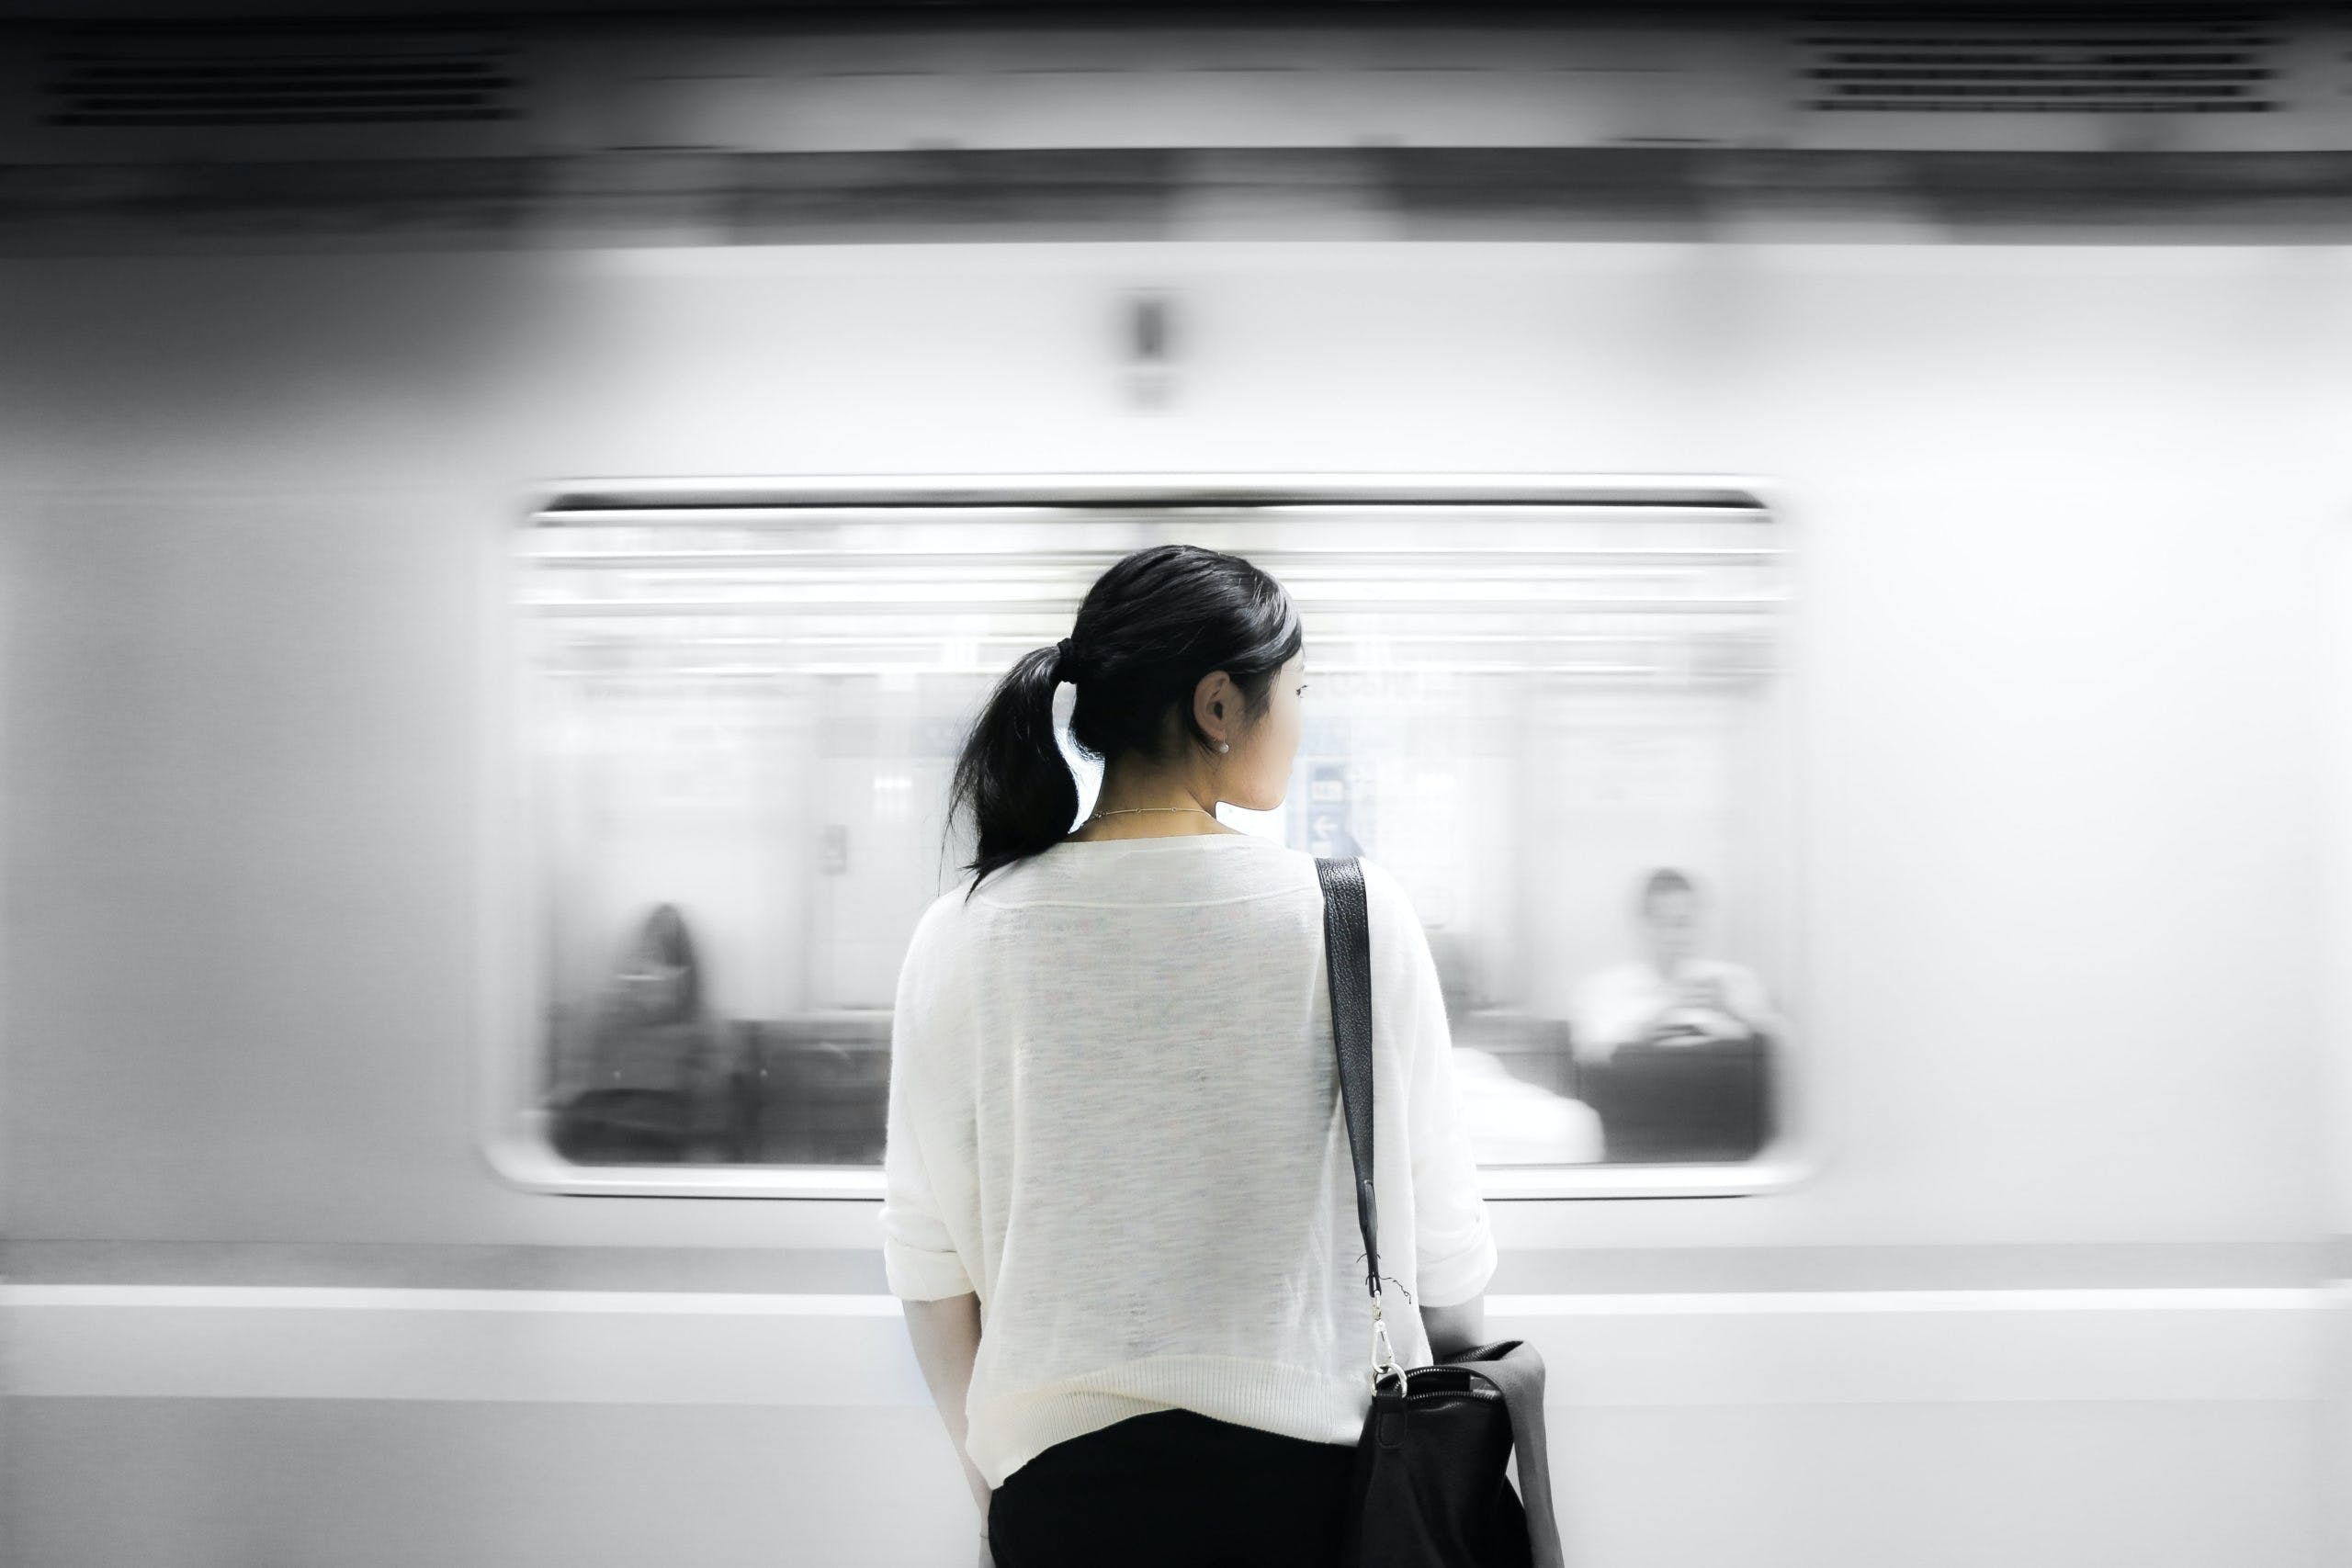 young woman standing alone in front of subway